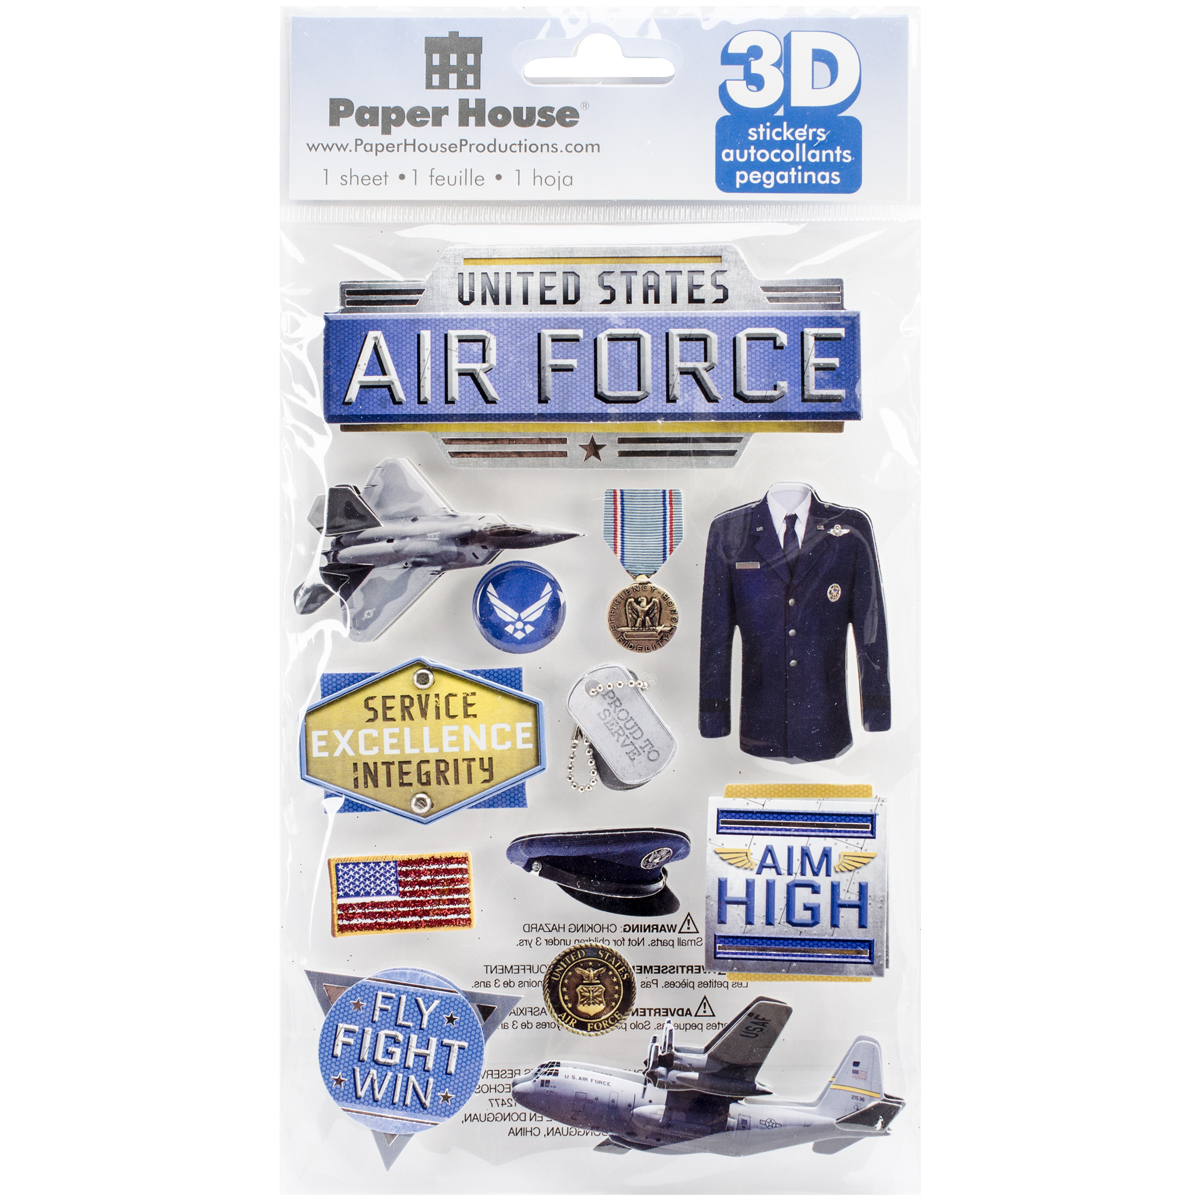 AIR FORCE -3D STICKERS